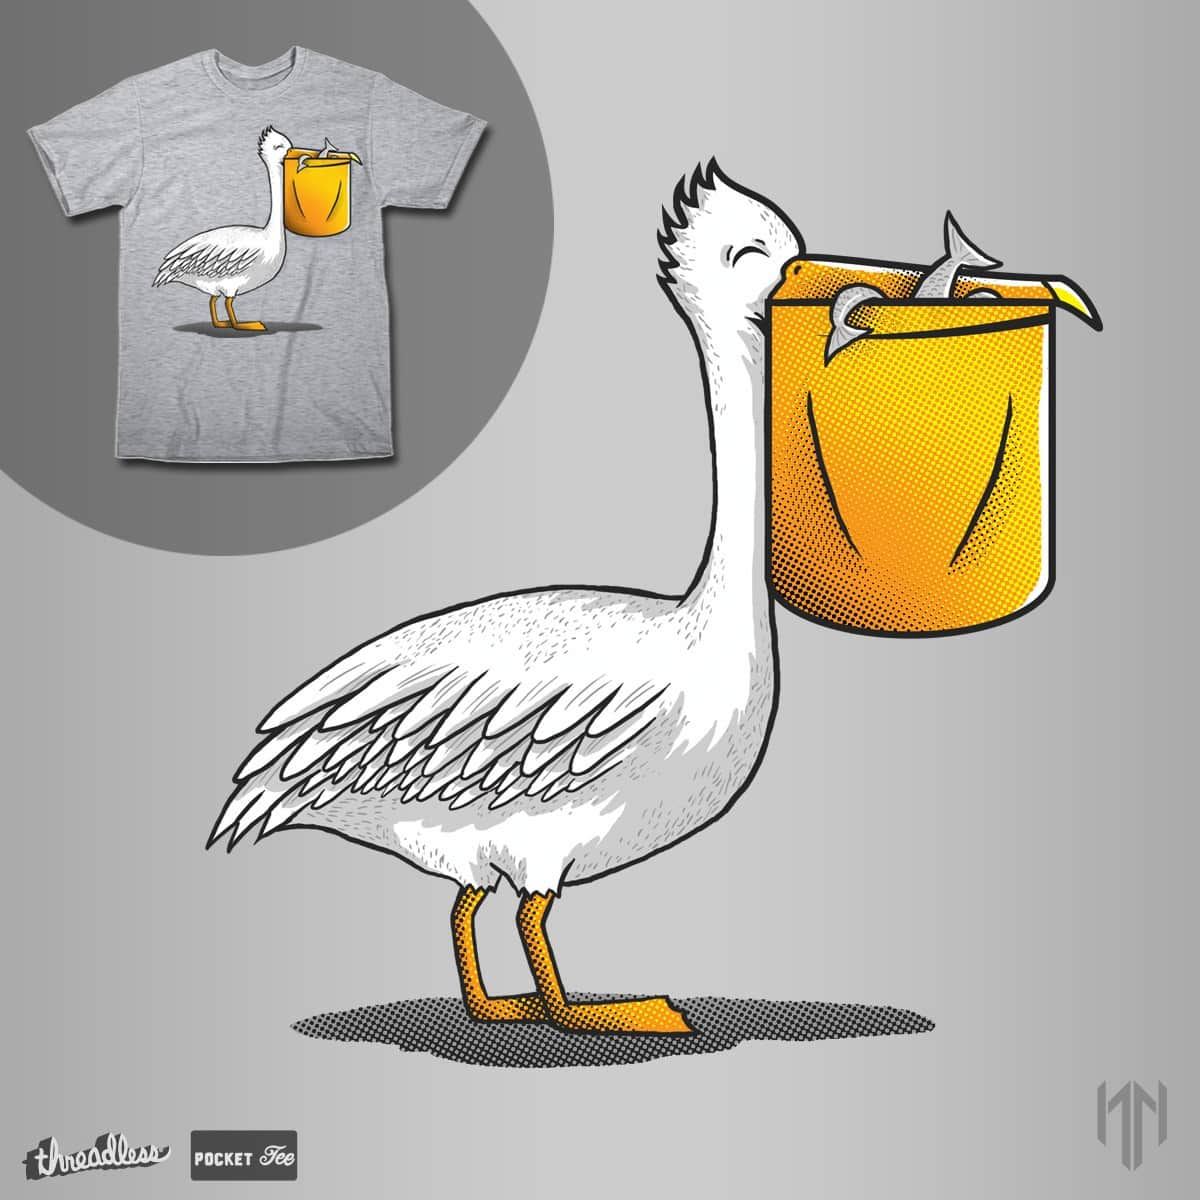 Feast by normannazar on Threadless